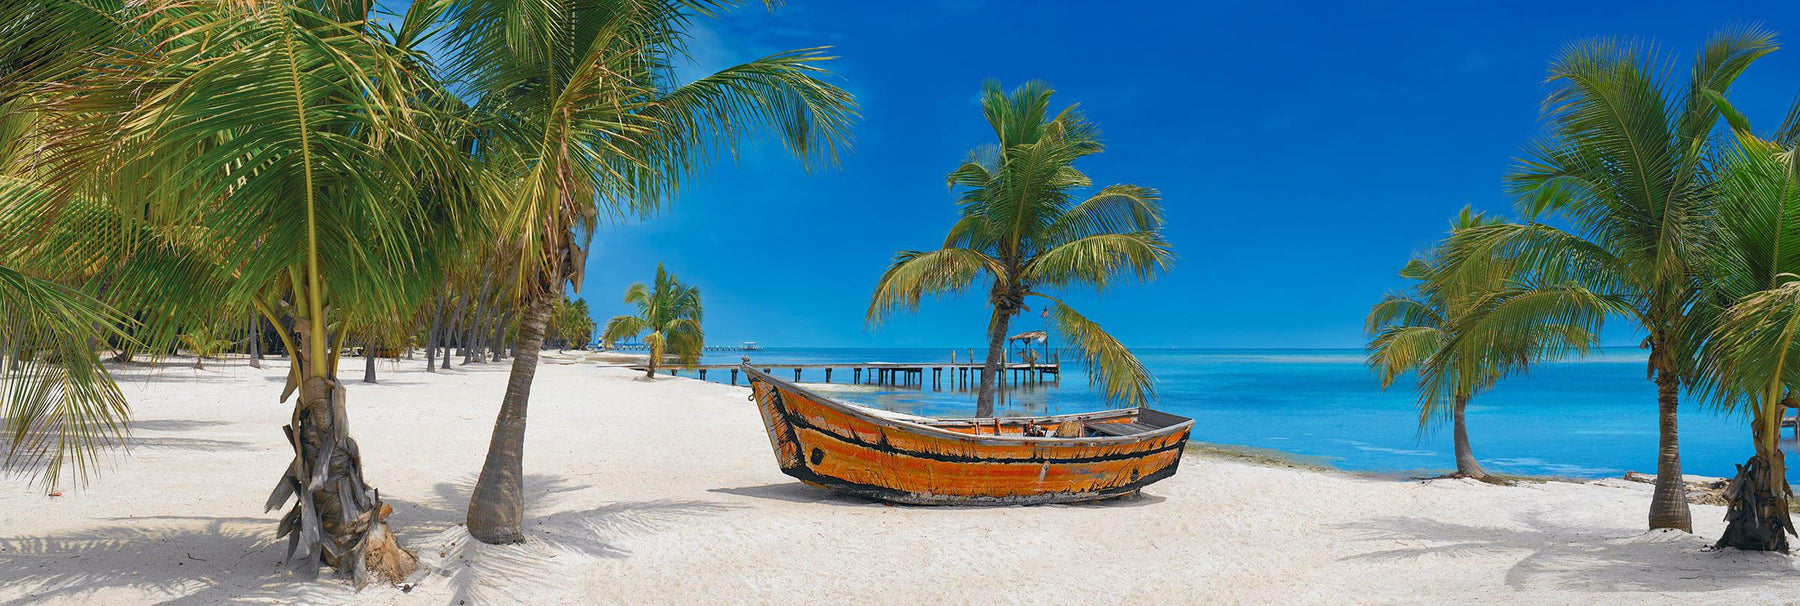 Old wooden boat sitting on a white sand beach full of palm trees with a jetty and the ocean in the background